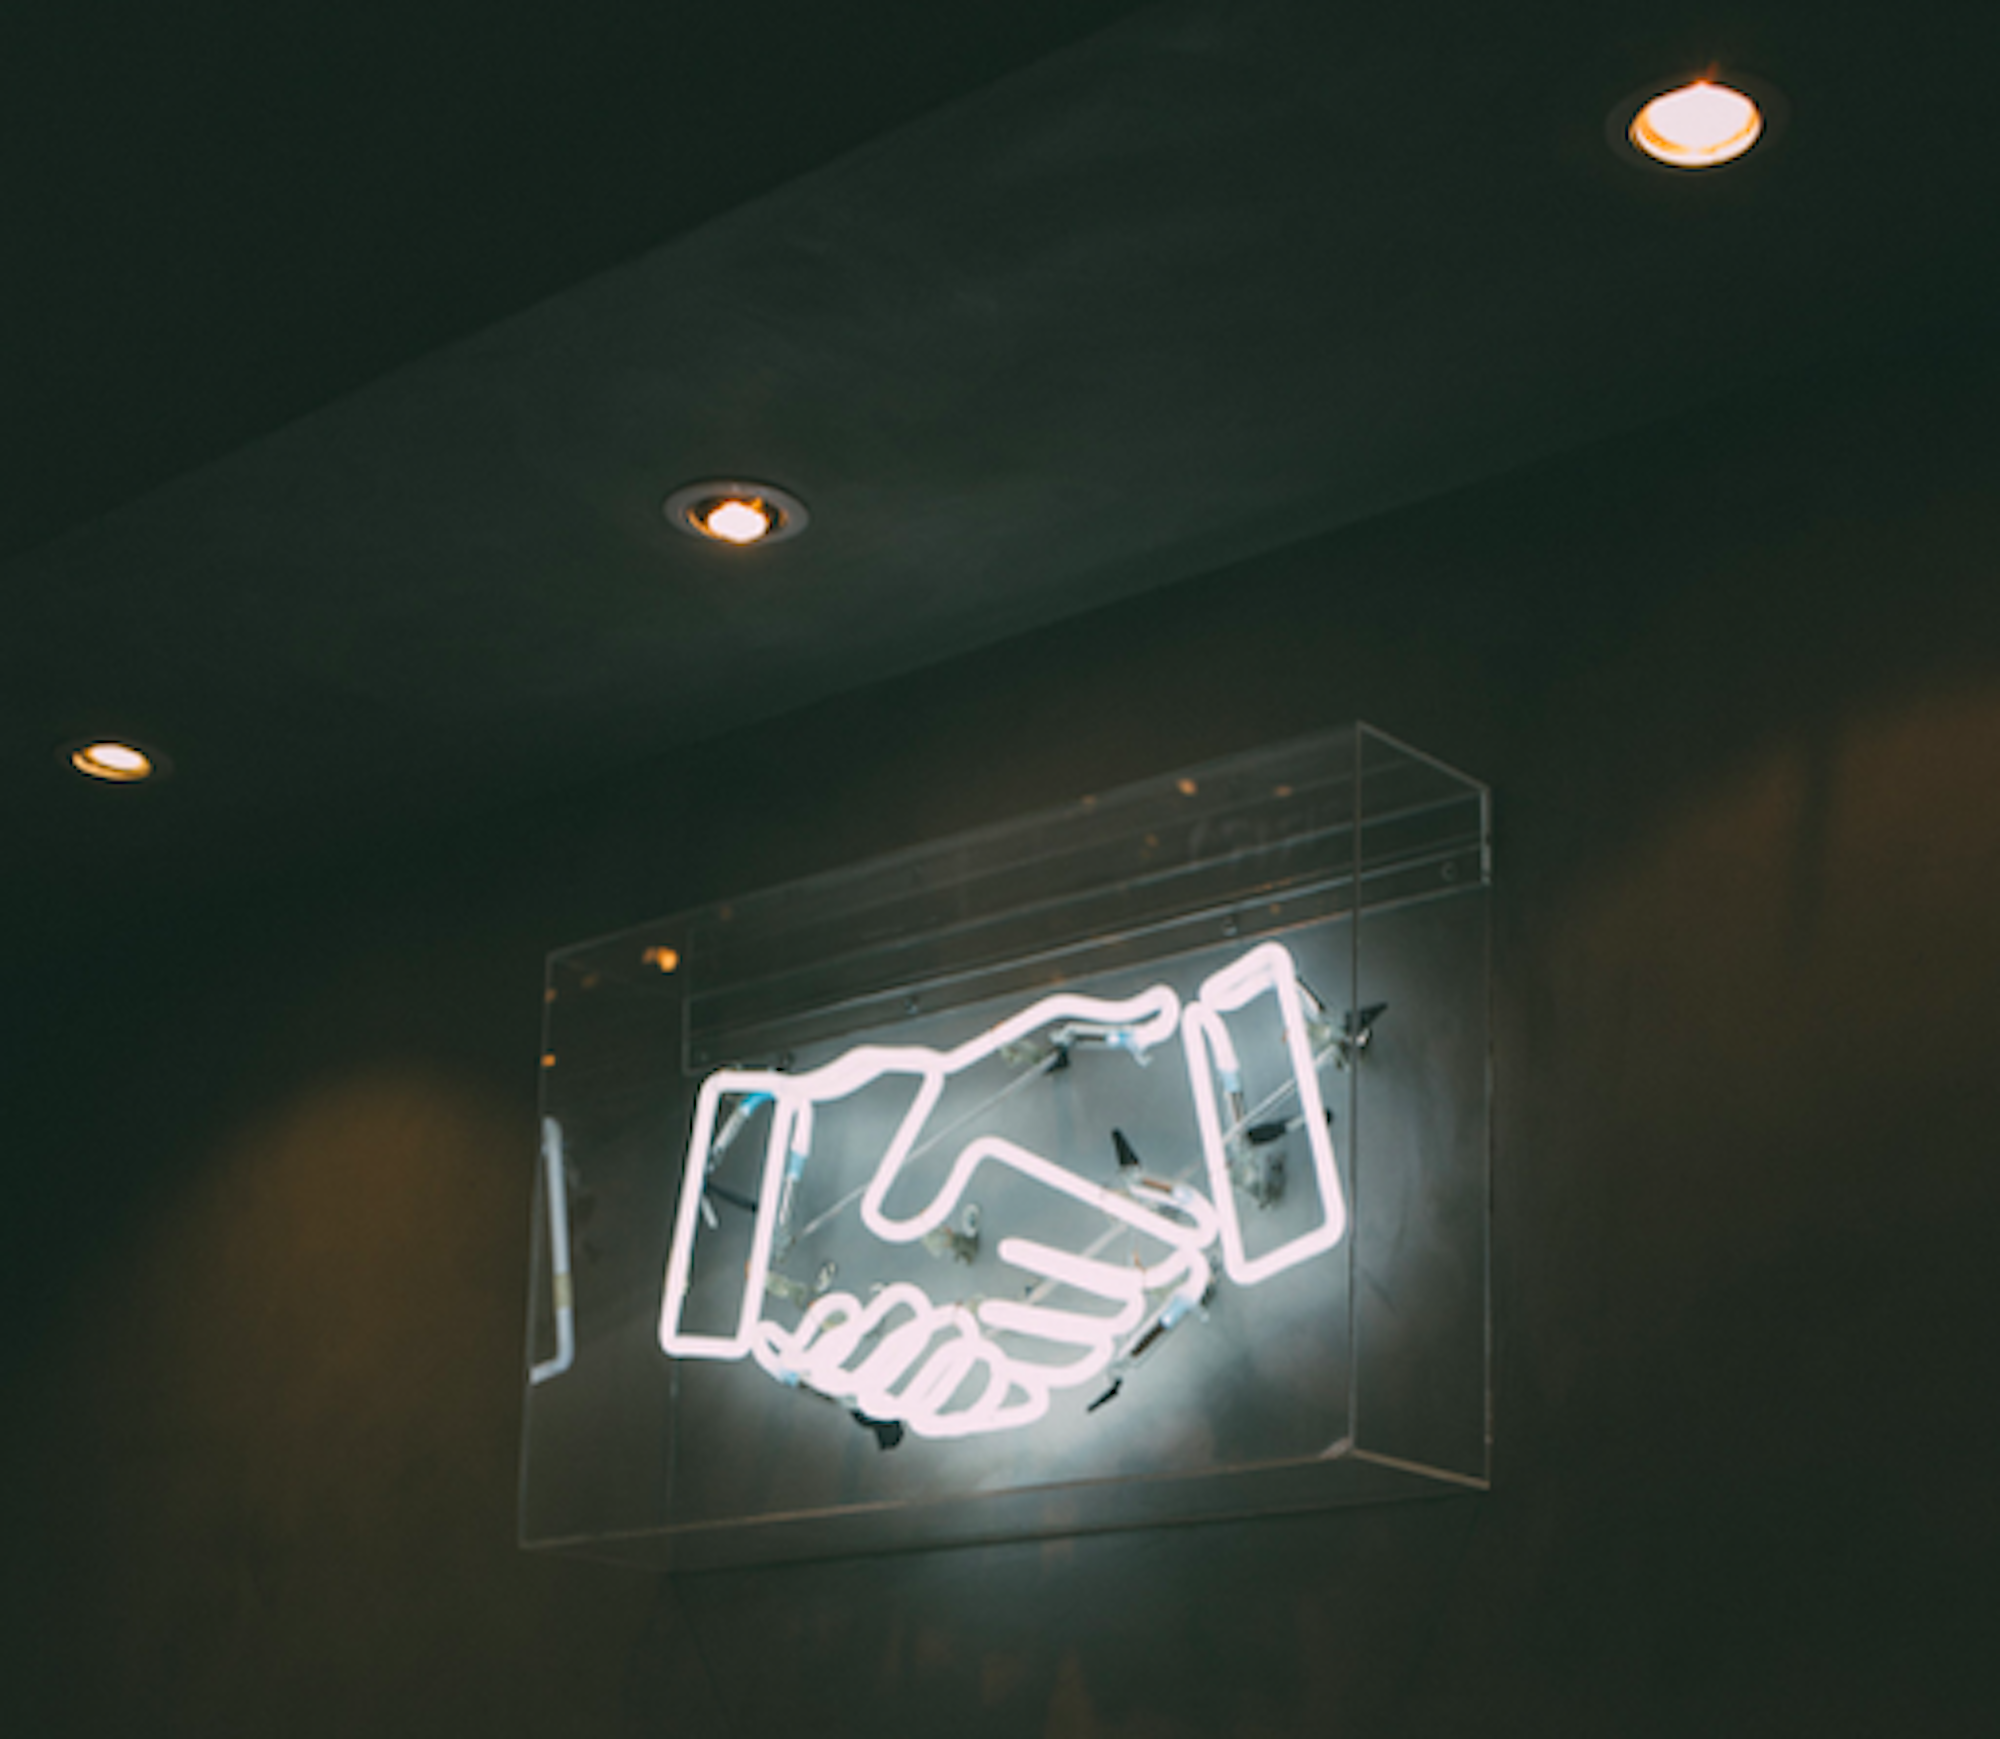 A neon art piece of a handshake between two hands.